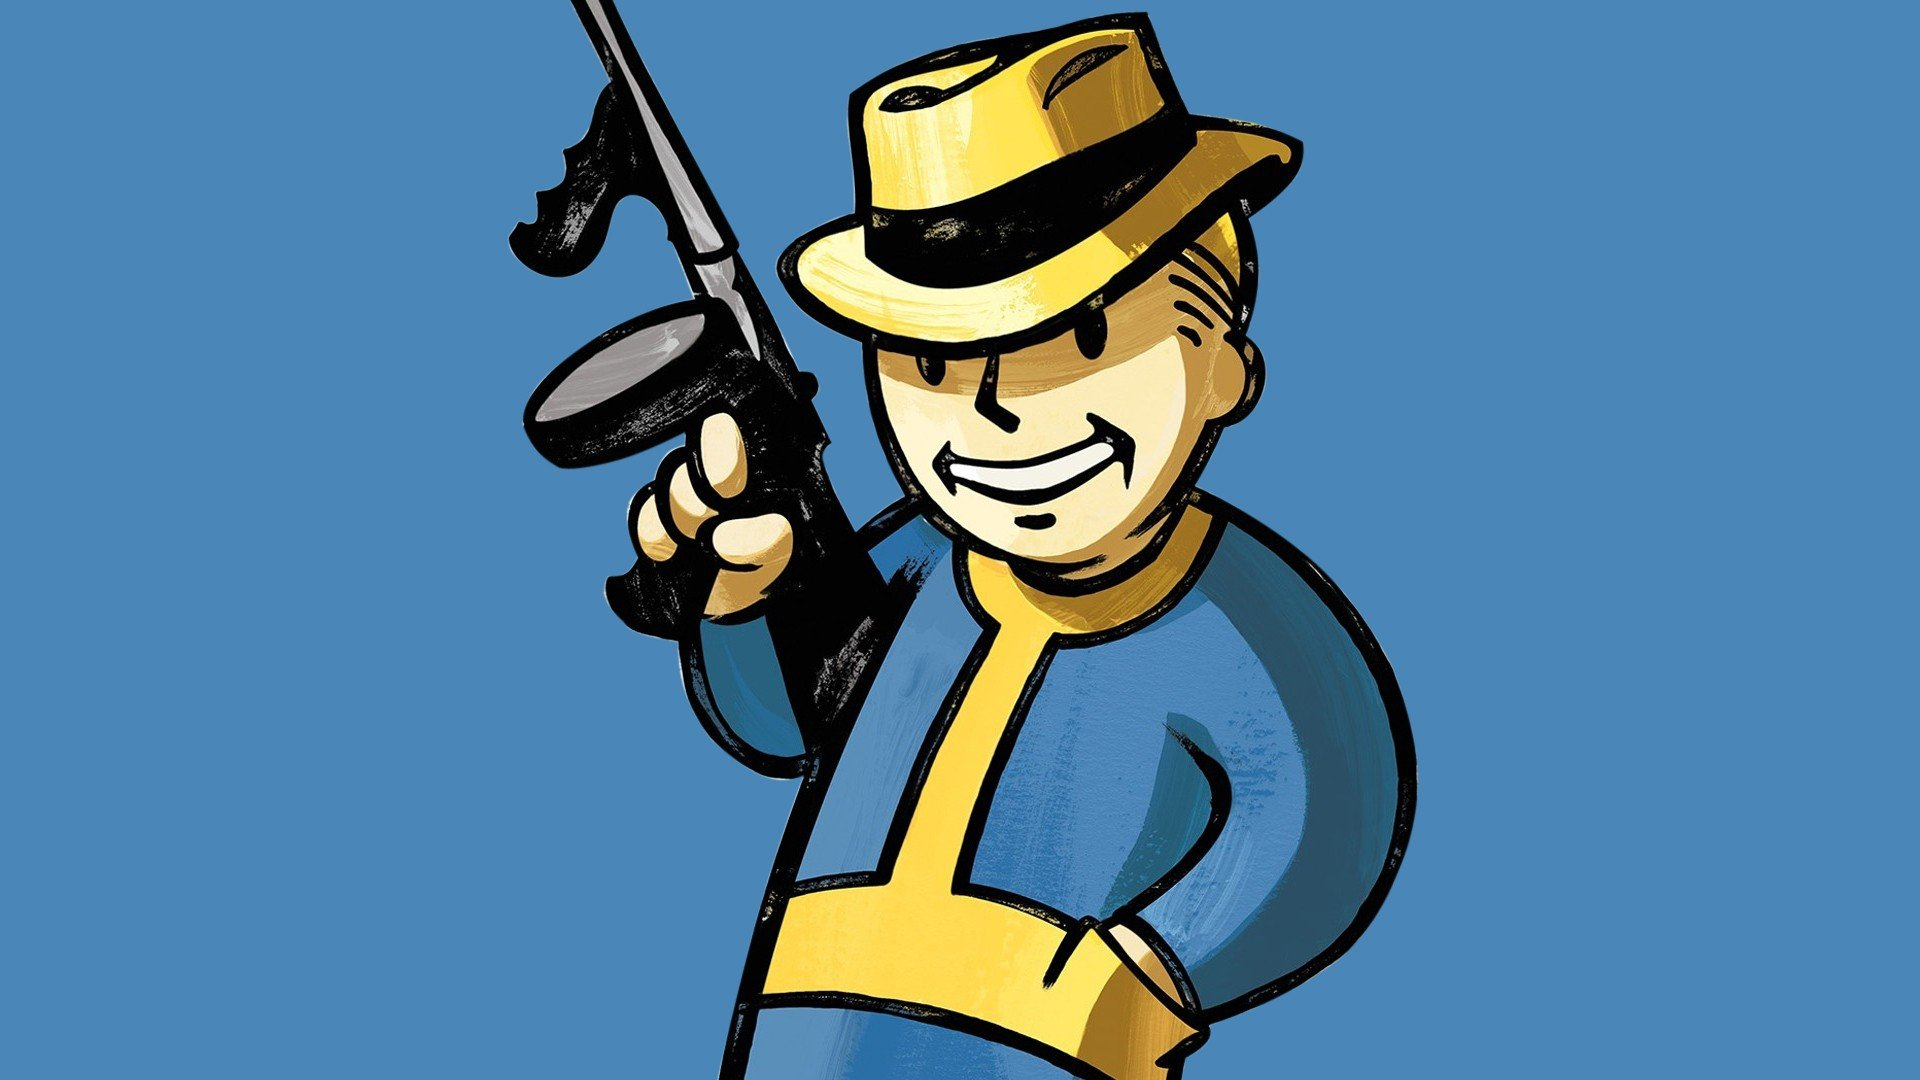 Fallout Pipboy Wallpaper for PC